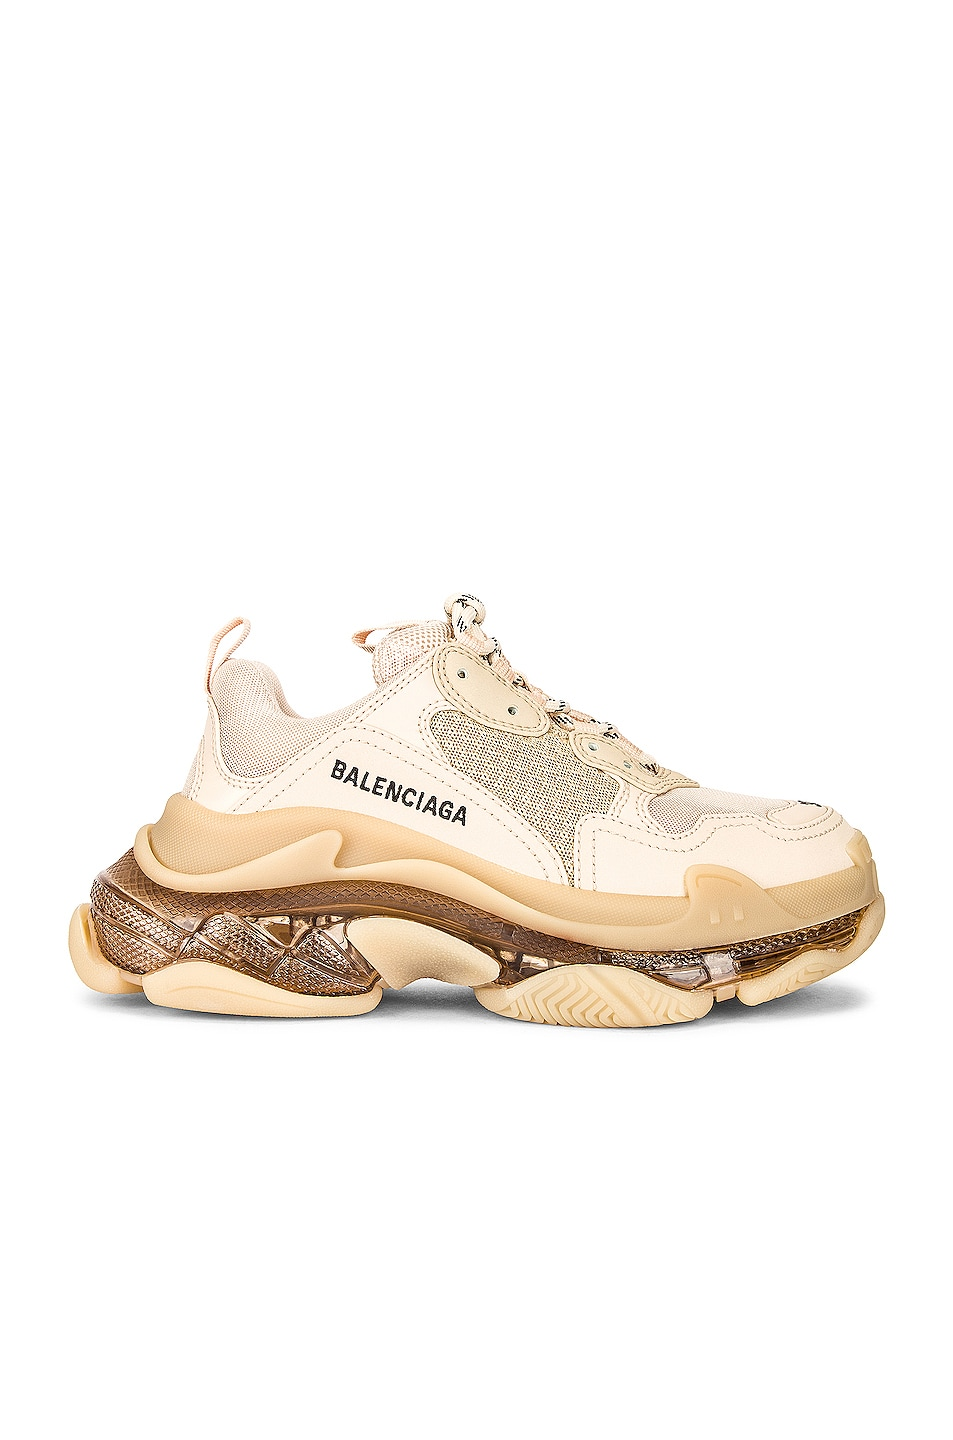 Image 1 of Balenciaga Triple S Clear Sole Sneakers in Nude